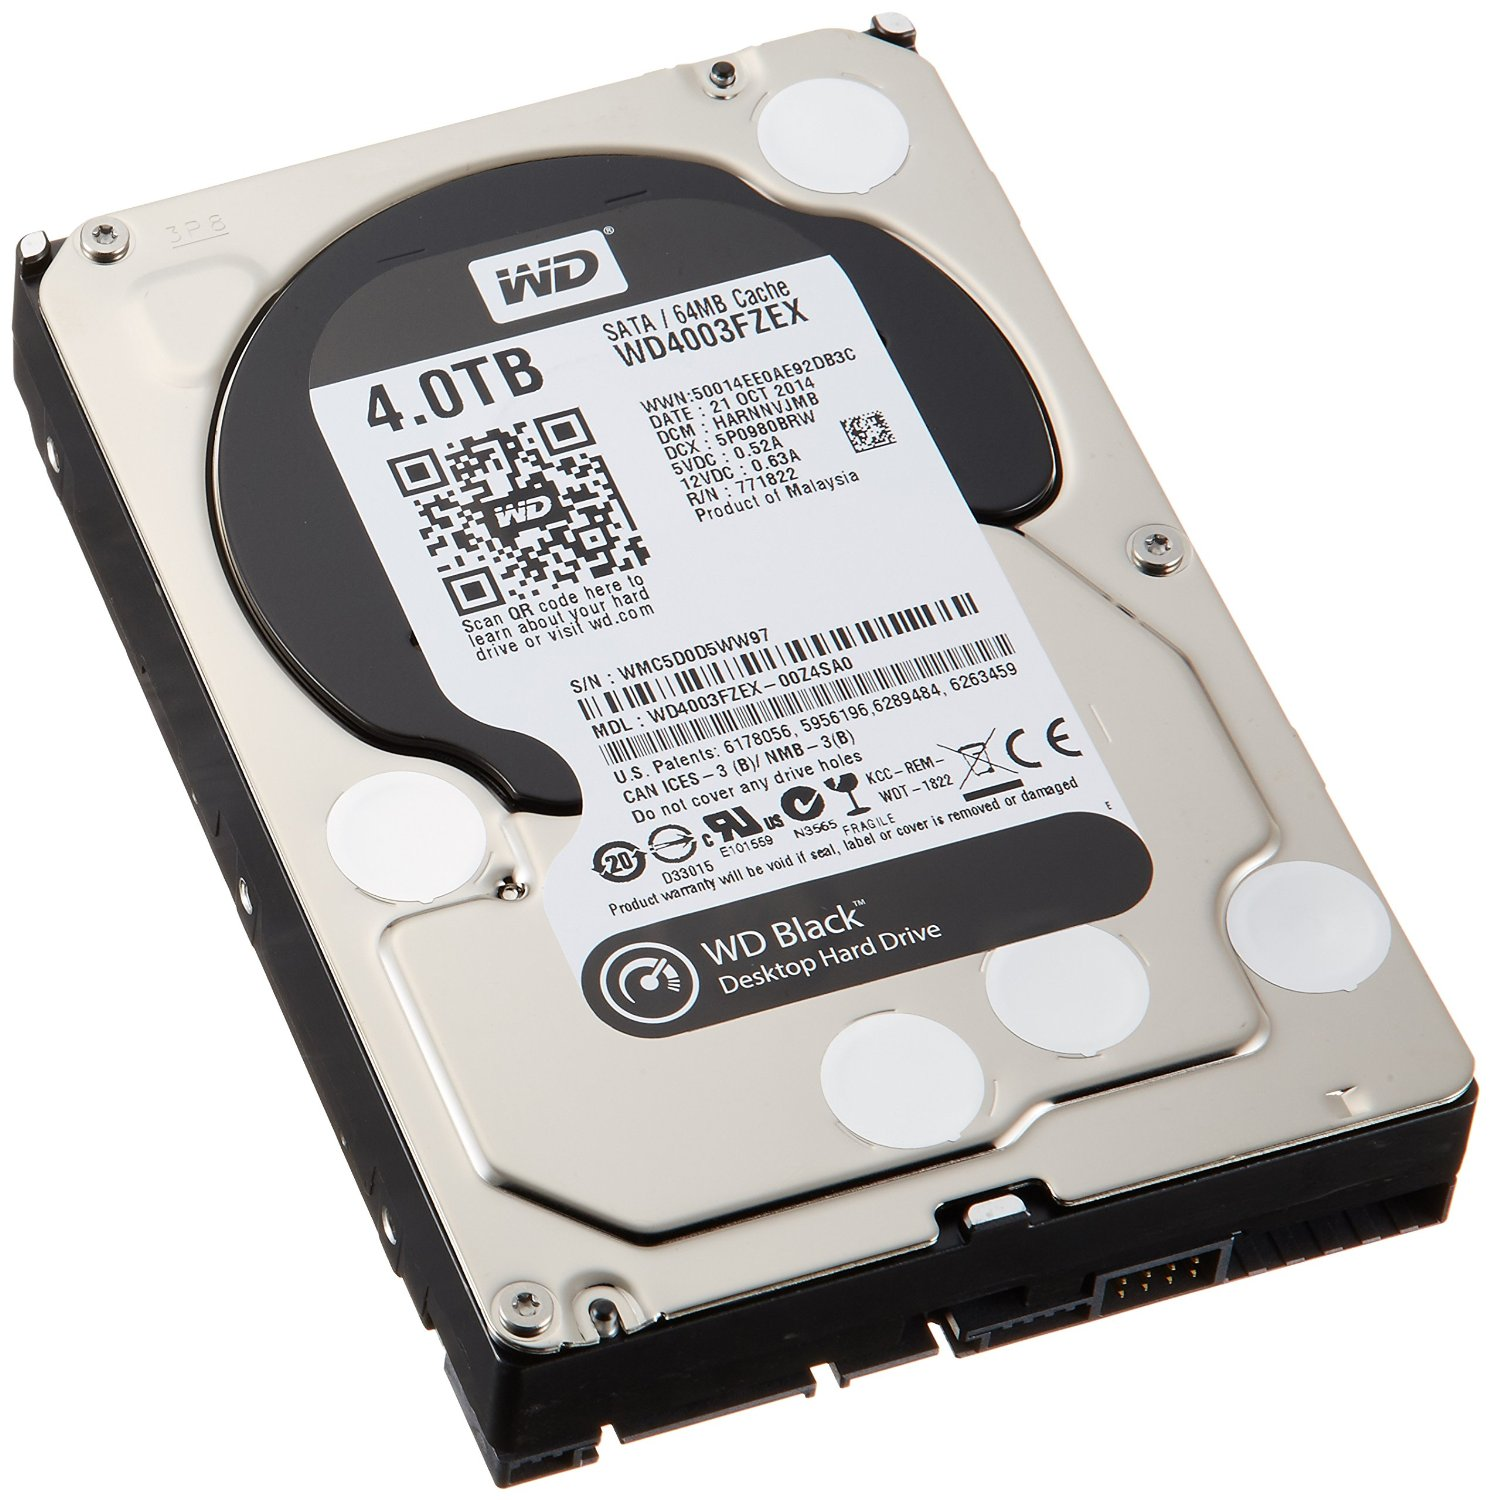 WD DT Black Series - 4TB   Hard Drives   For Sale Online at AWX